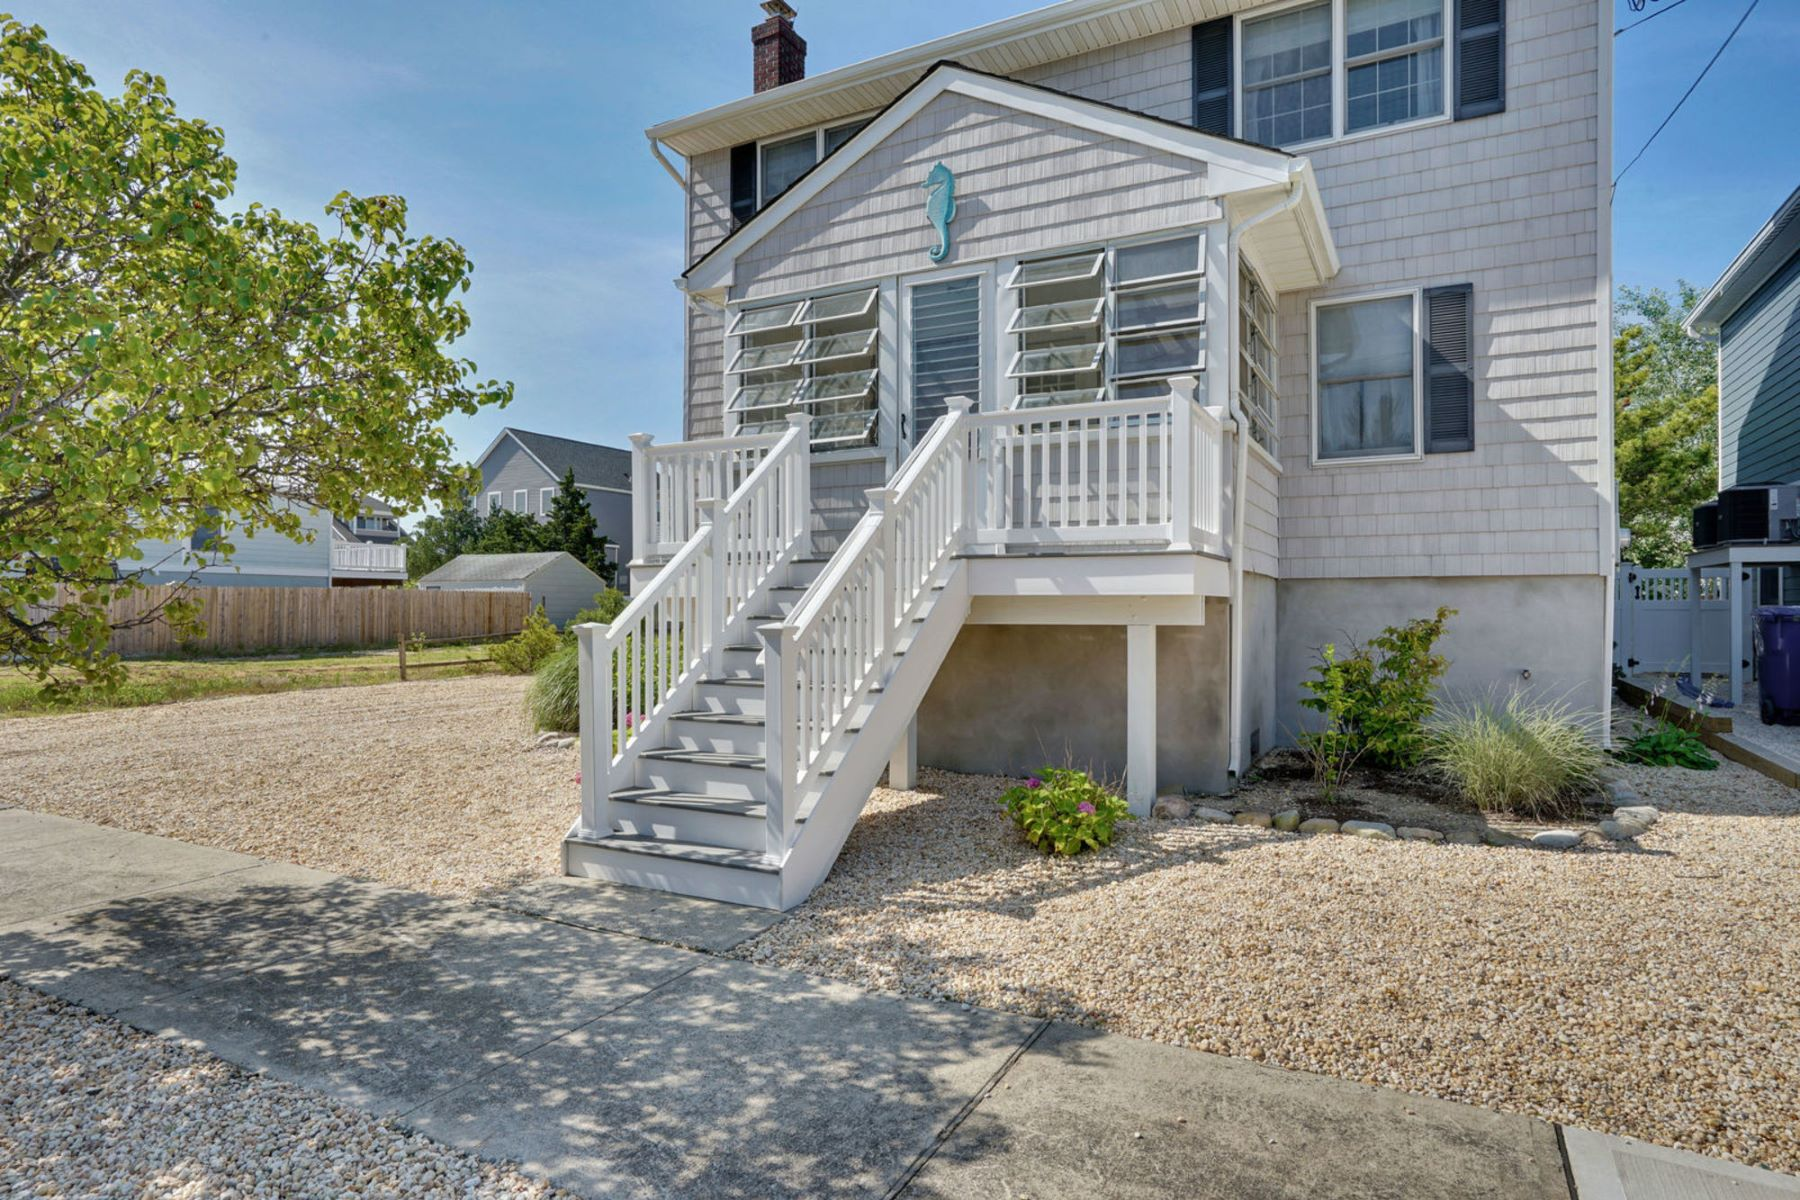 Single Family Homes for Sale at Recently Elevated Located on Oversized Lot 314 6th Avenue Normandy Beach, New Jersey 08739 United States